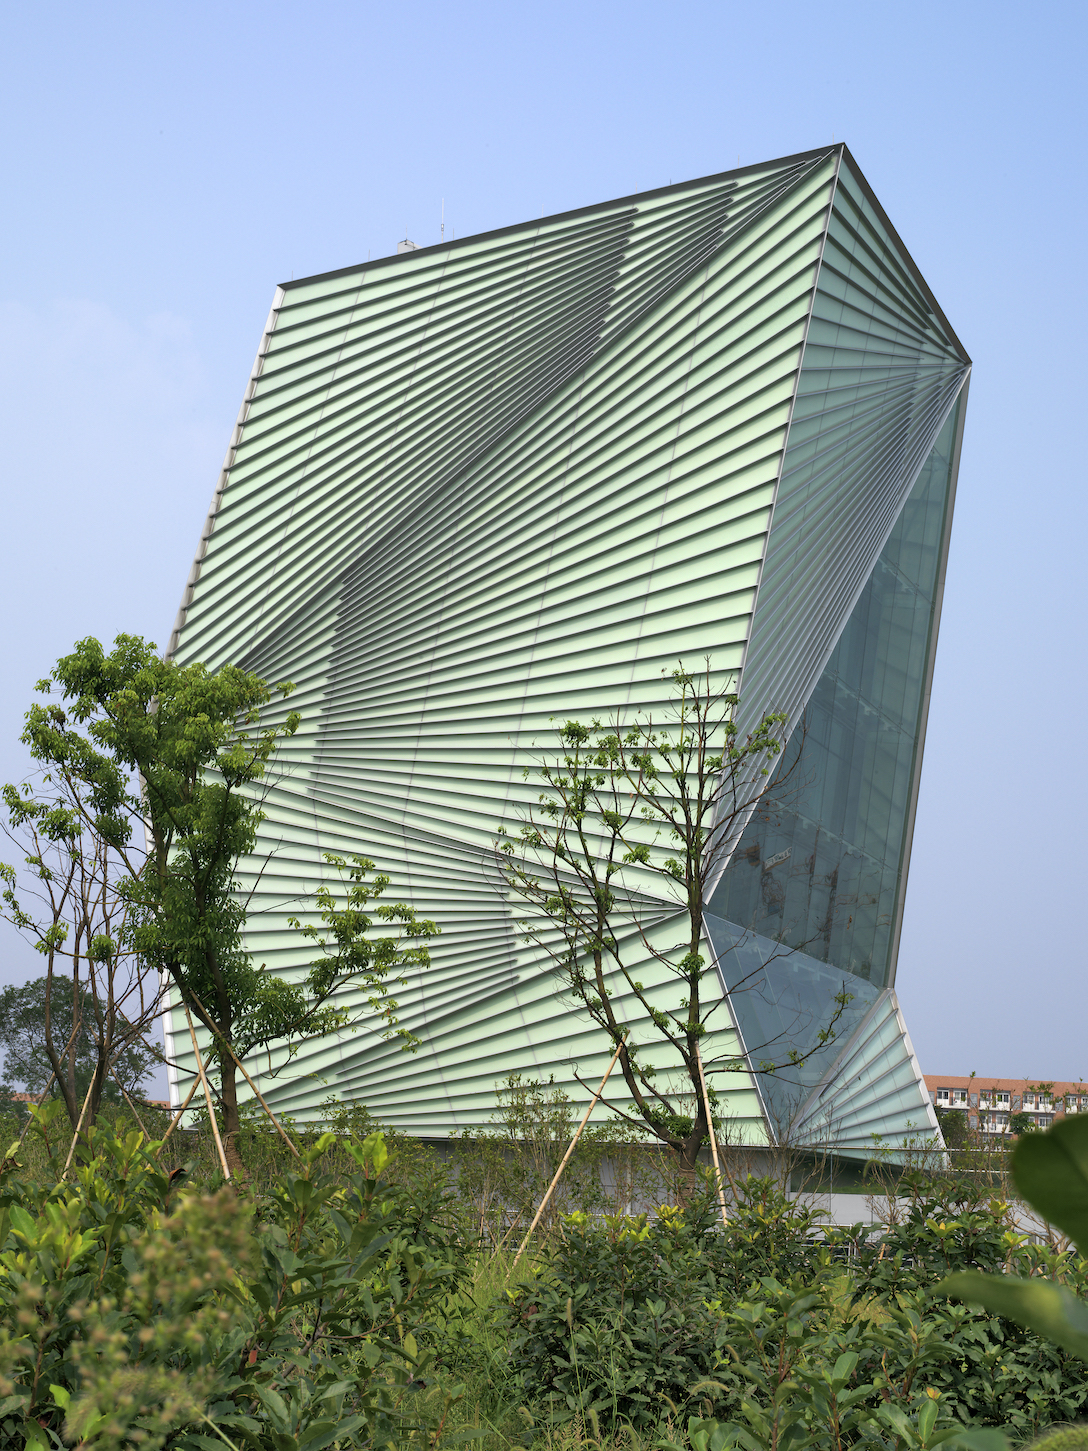 MCA Ningbo - Mario-Cucinella-Architects-CSET View from the Garden 2008 Photo by Daniele Domenicali